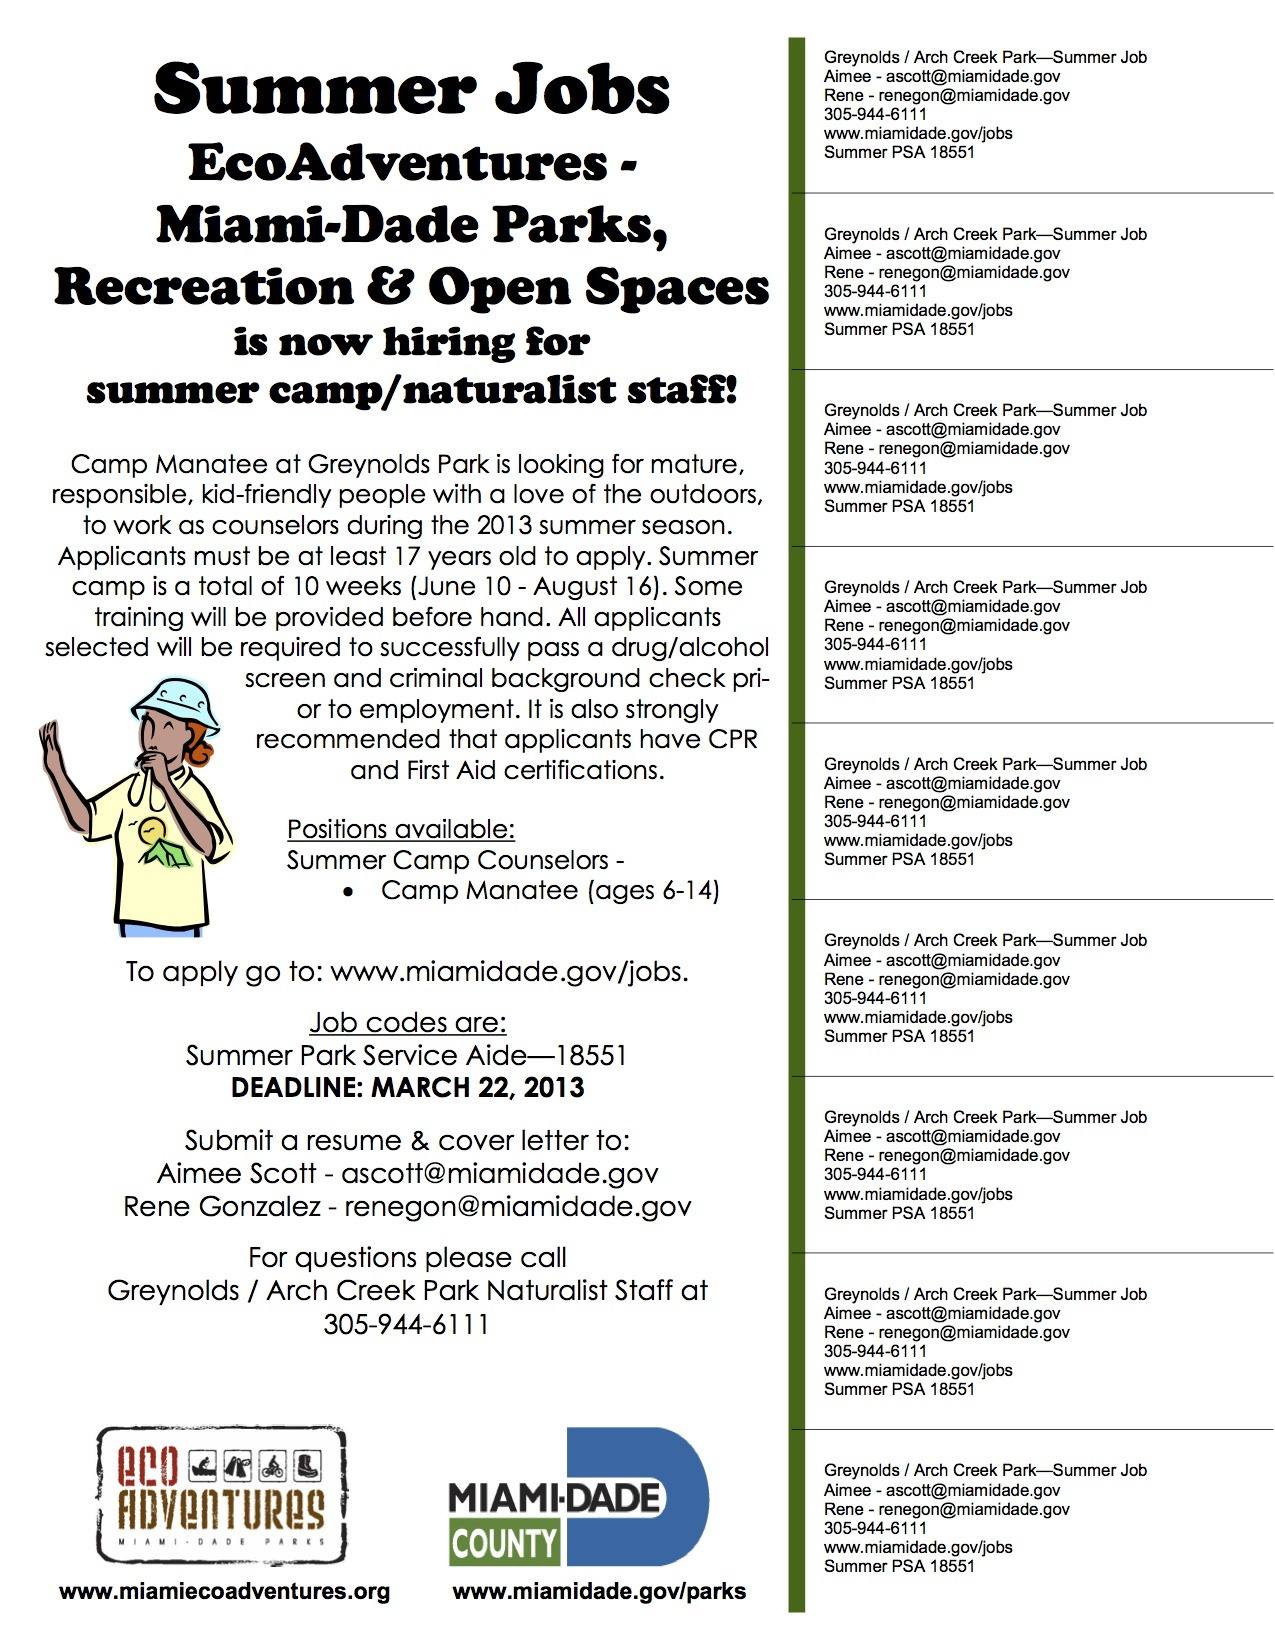 Now accepting applications for summer camp jobs arch creek park summer job flyer 2013 spiritdancerdesigns Images